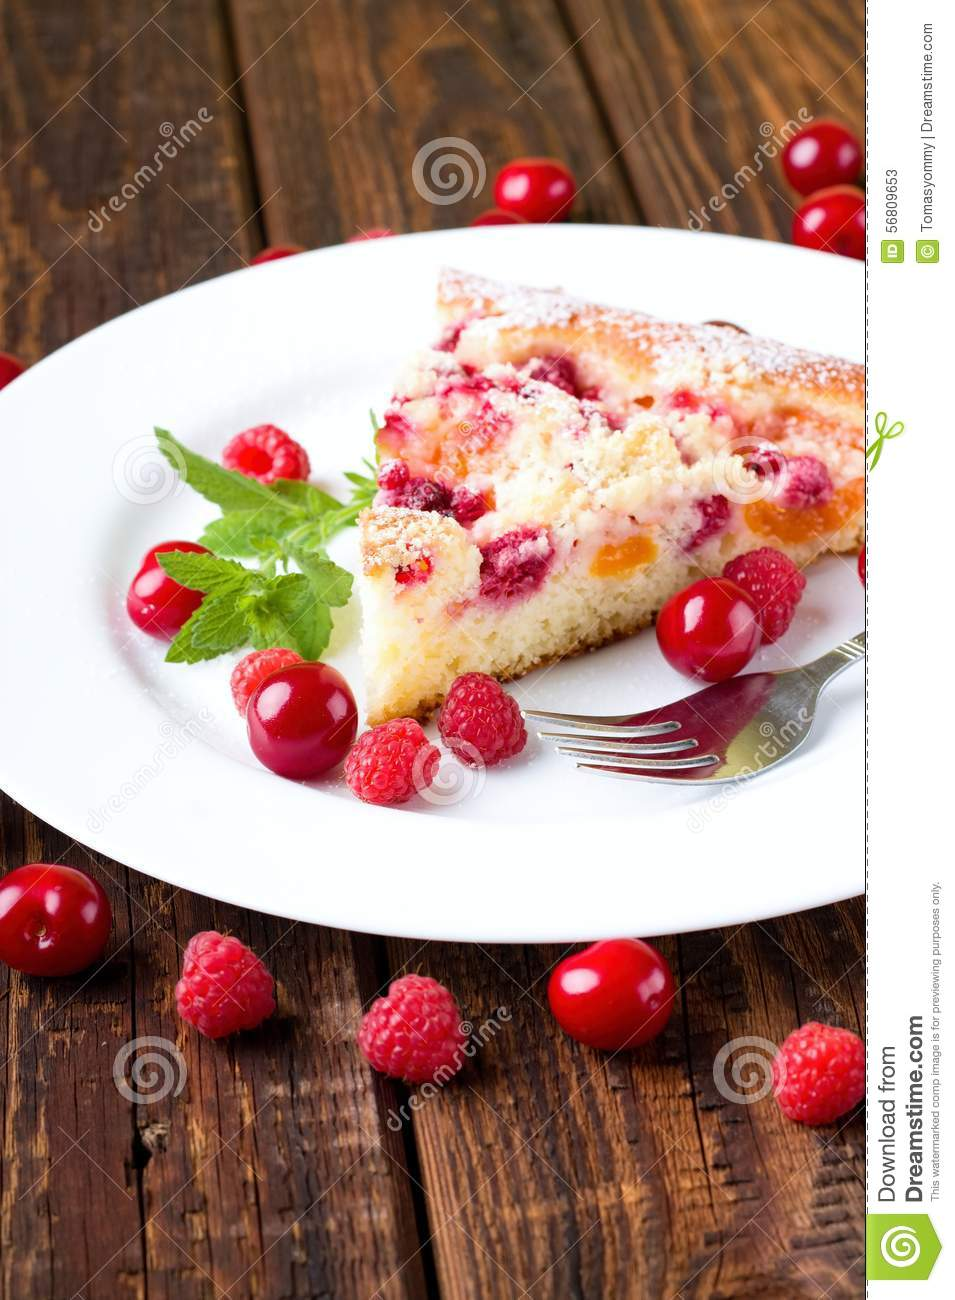 Fruit pie on white plate with berries